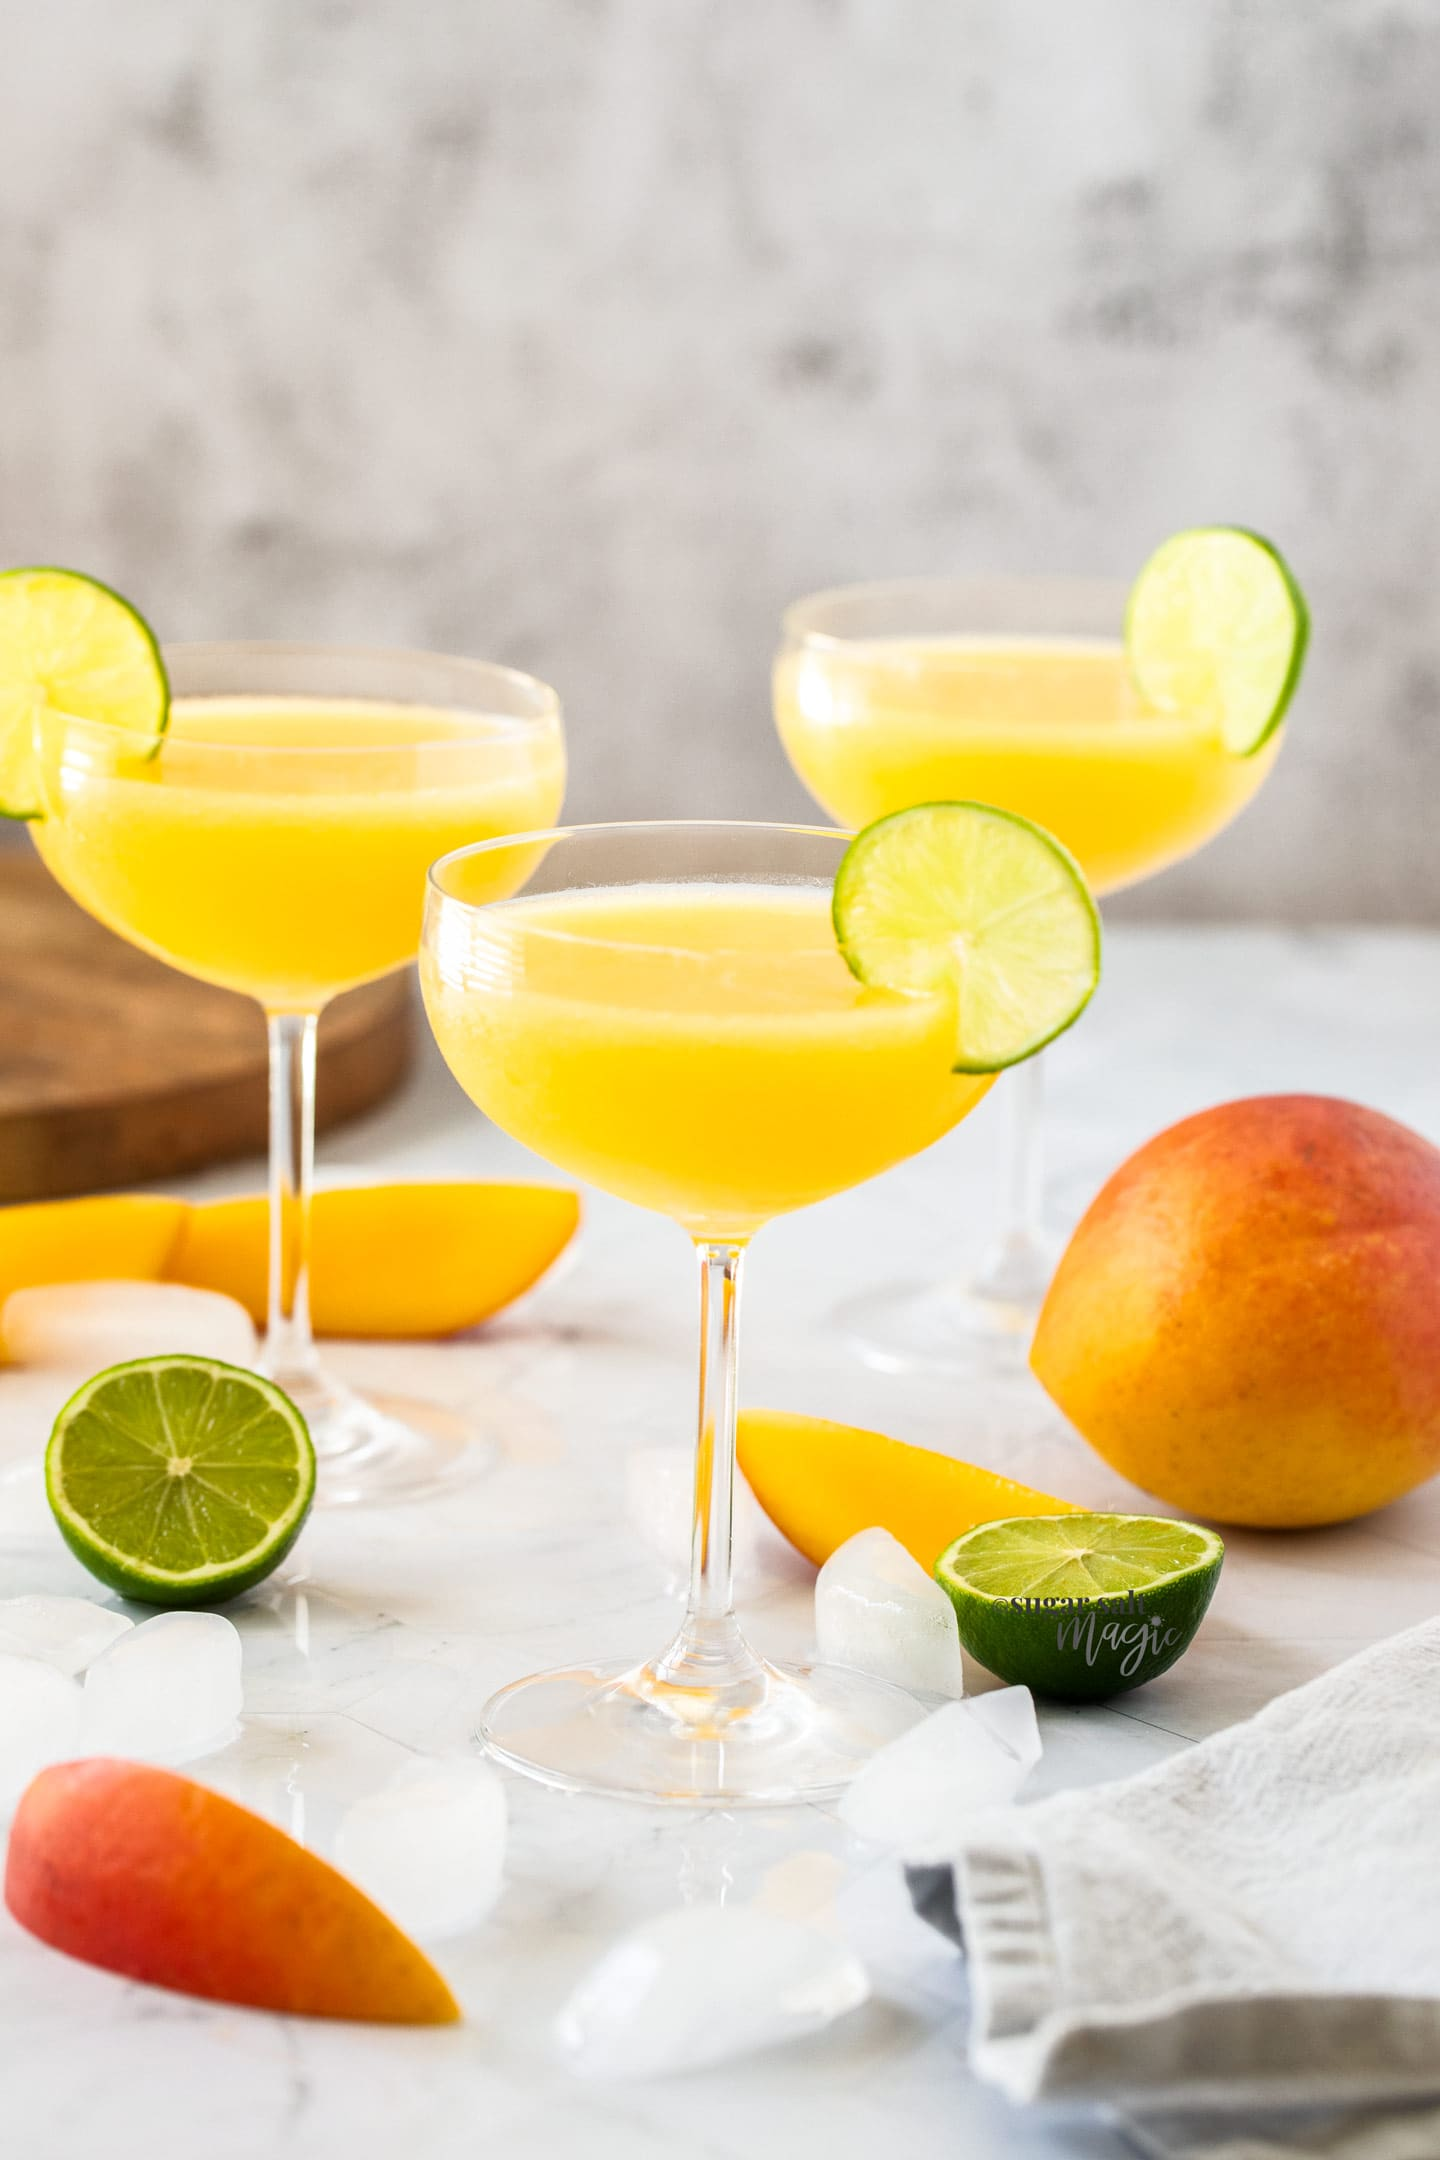 3 champagne saucers filled with mango daiquiri with a slice of lime on the edge